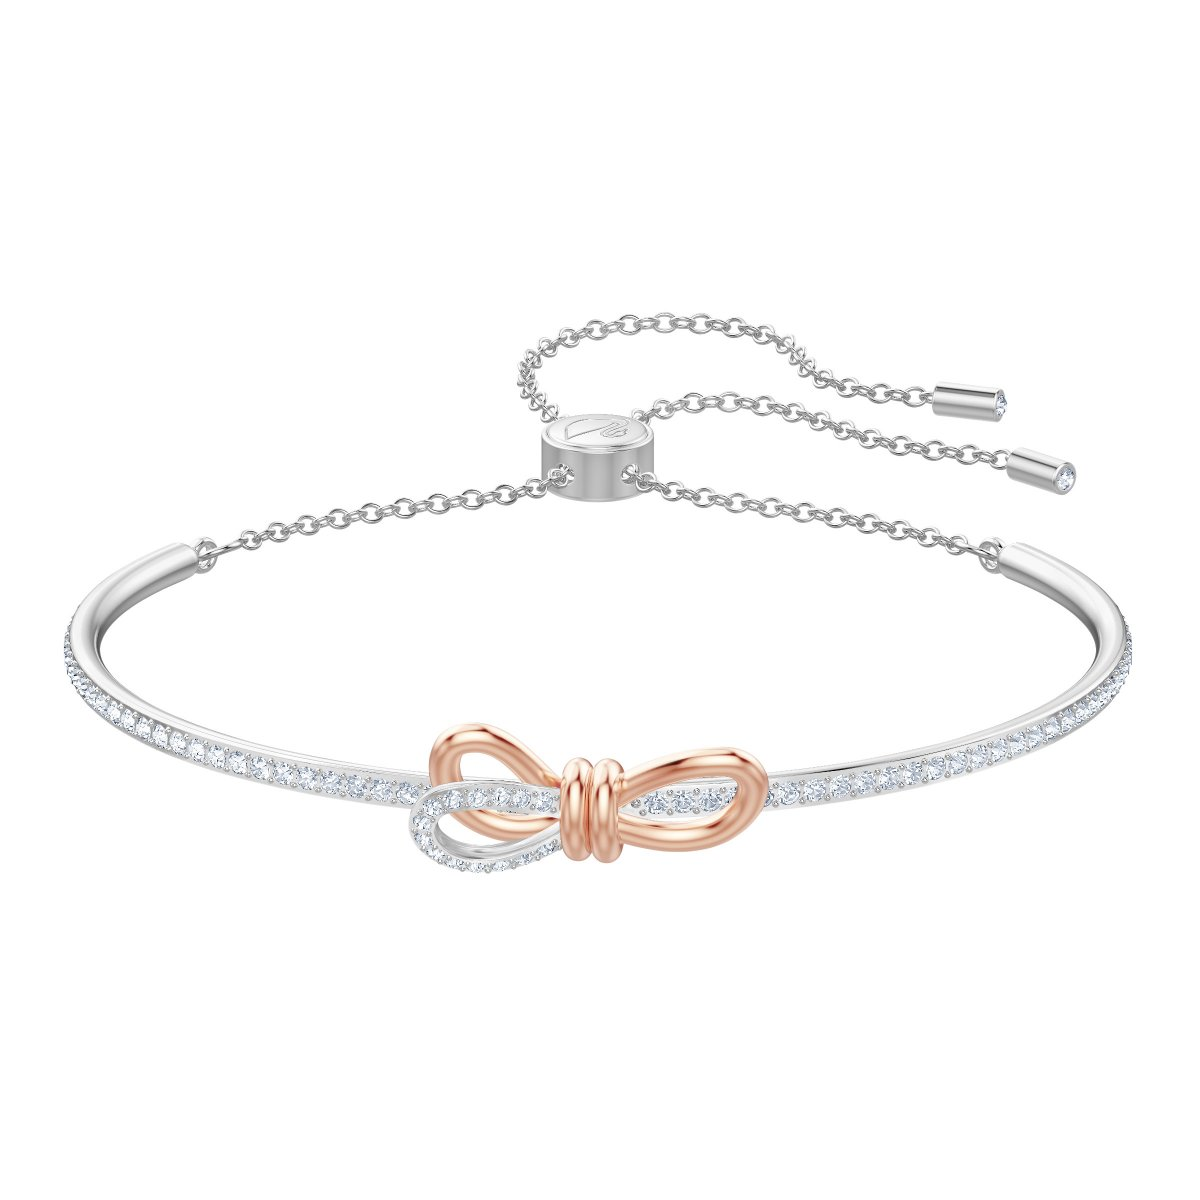 Náramok SWAROVSKI LIFELONG BOW:BANGLE CRY/MIX M